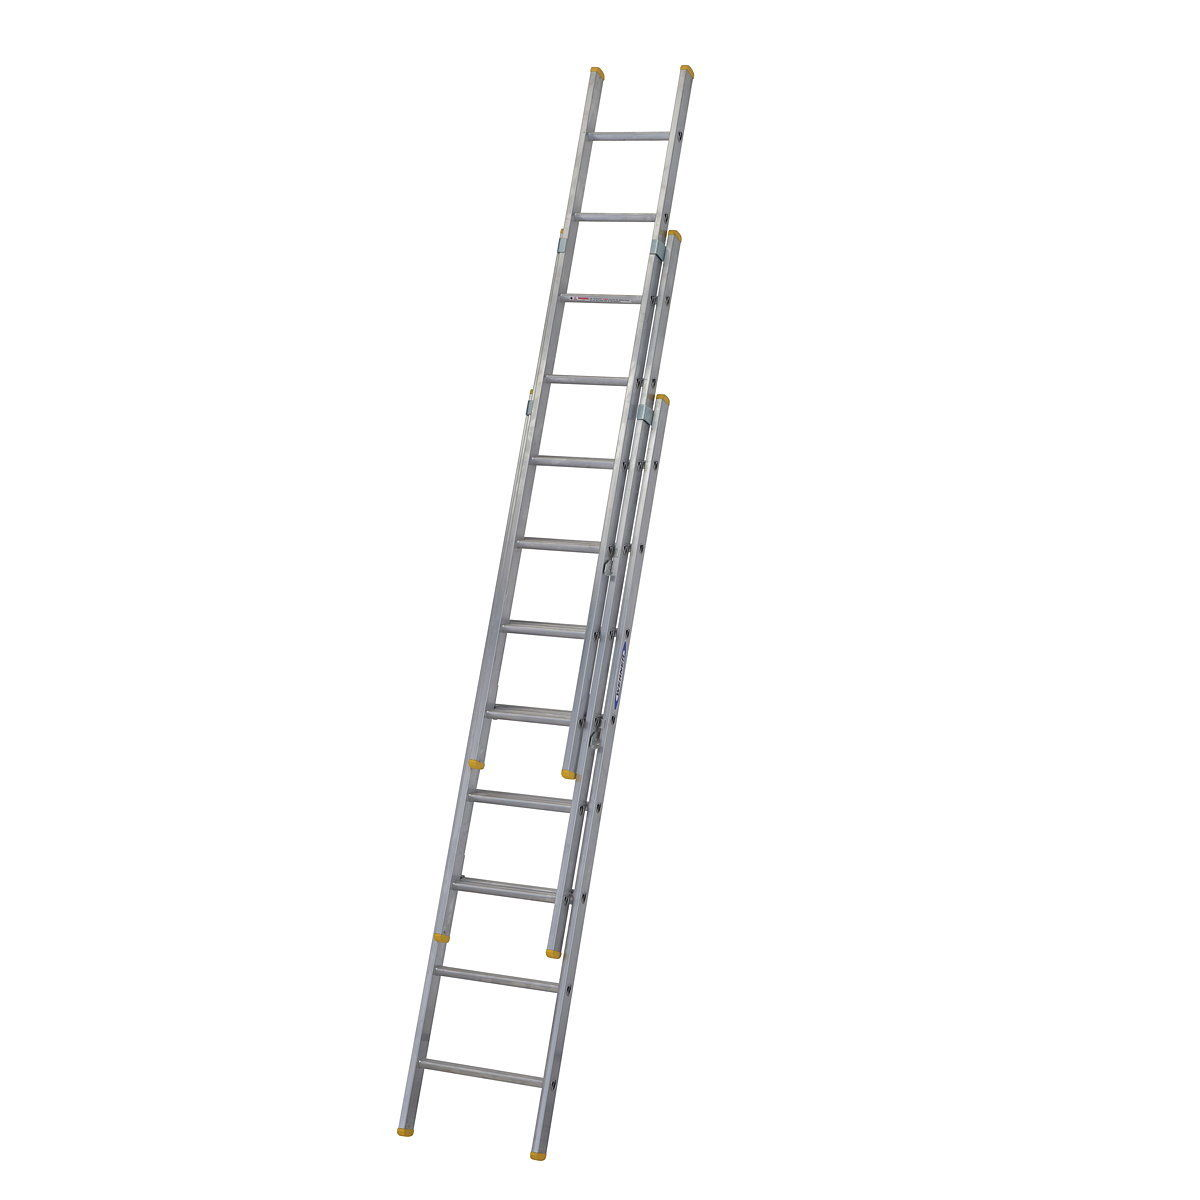 3 Section Ladder : Werner abru promaster bsen trade triple section